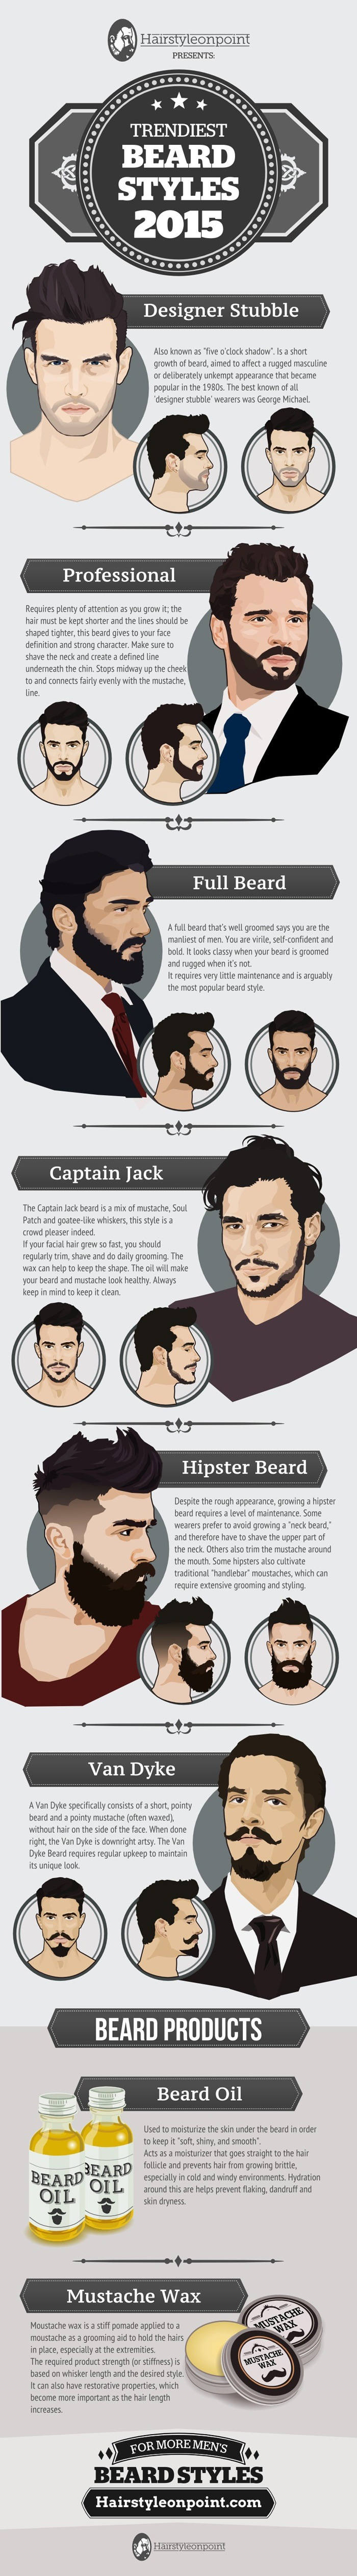 Is There Any Android App Which Suggest A Hairstyle According To My